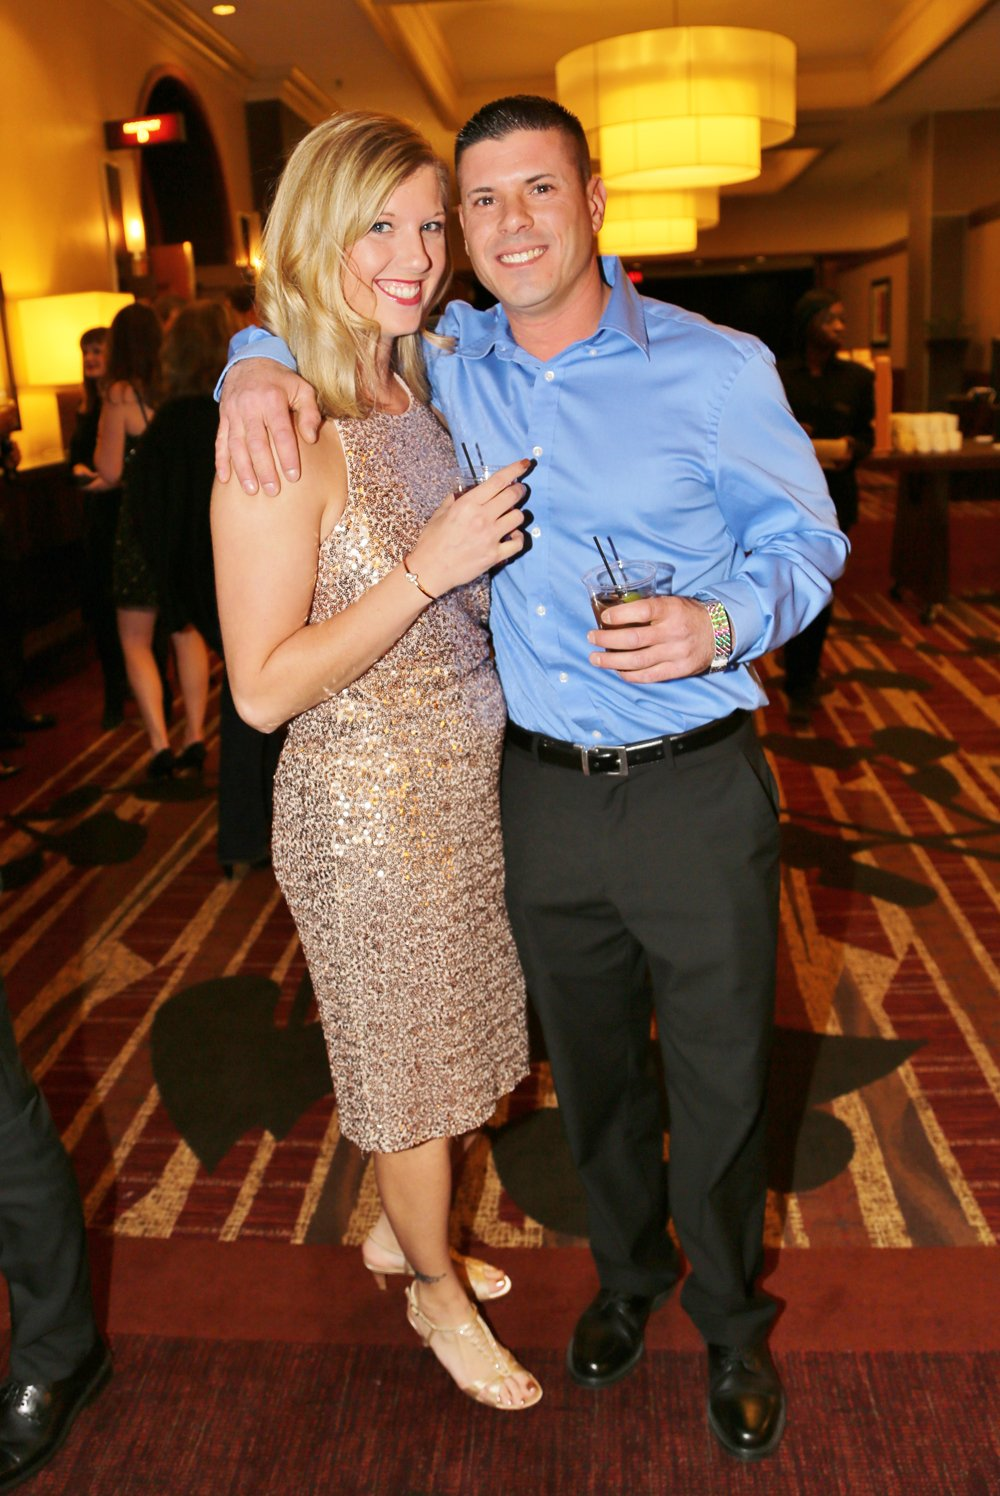 The Ultimate New Year's Eve Party at Hyatt Regency St. Louis